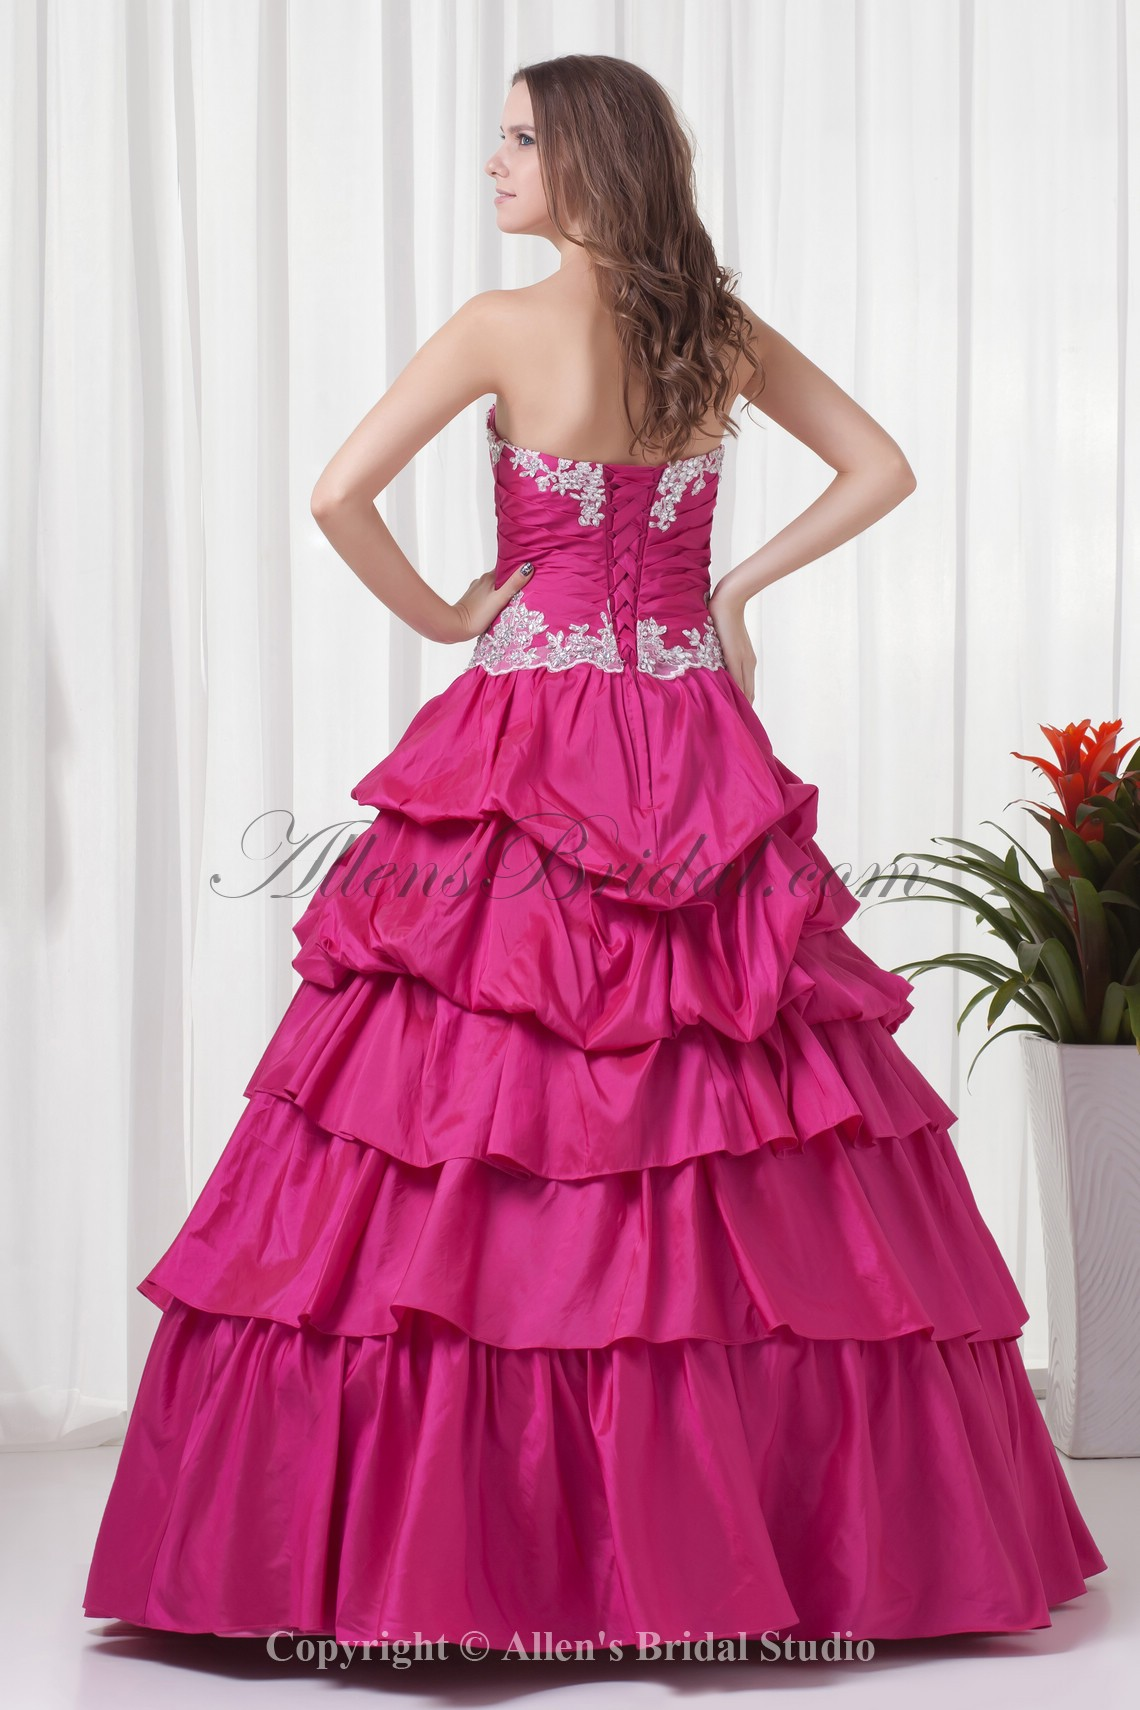 /316-2527/taffeta-sweetheart-ball-gown-floor-length-prom-dress-with-embroidered-and-jacket.jpg